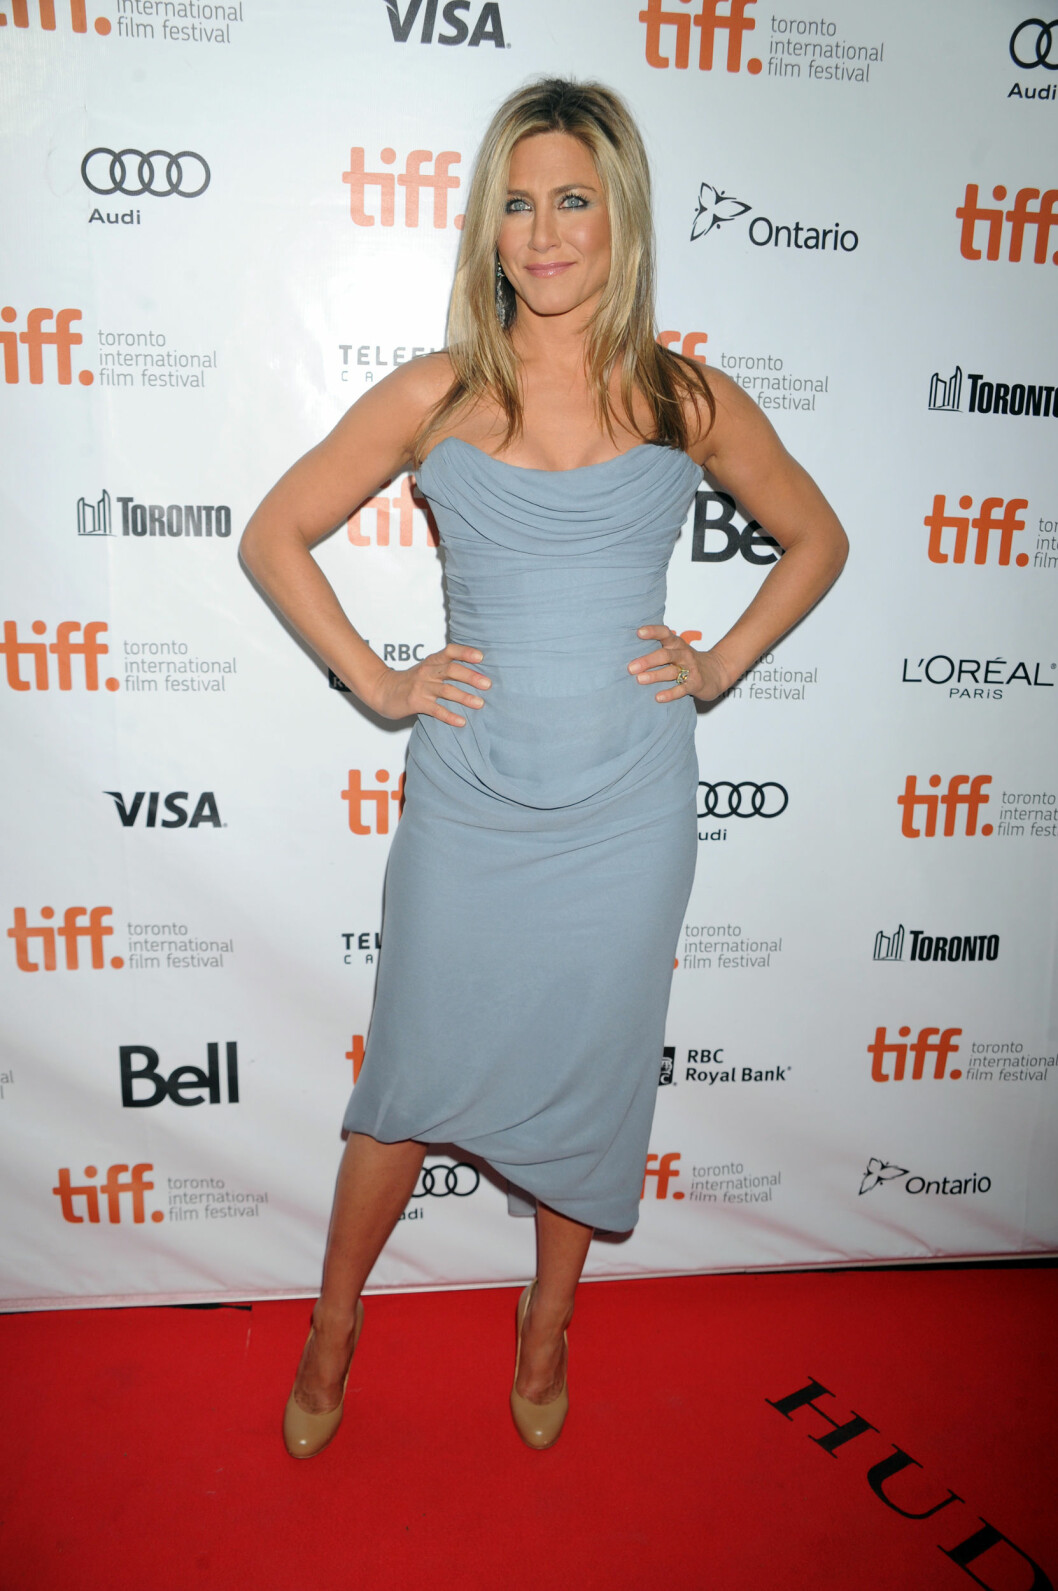 SEXY: Jennifer Aniston strålte på filmpremieren Toronto forrige helg. Foto: Brock Miller / Splash News/ All Over Press